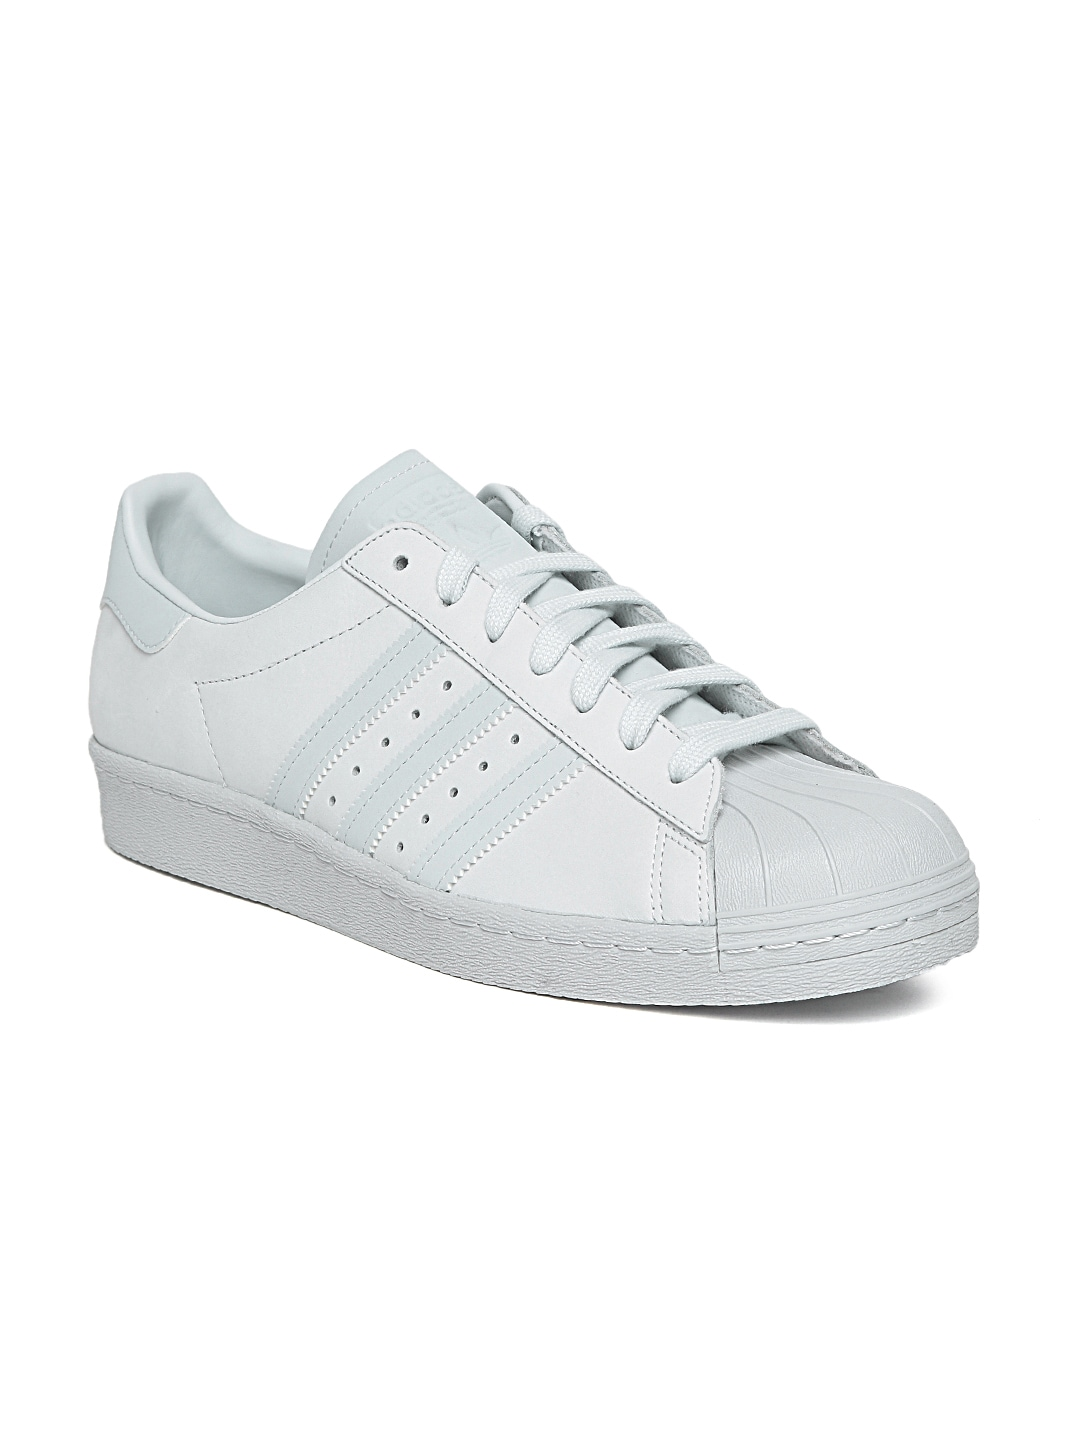 Adidas Shoes - Buy Adidas Shoes for Men   Women Online - Myntra 23b48ae23